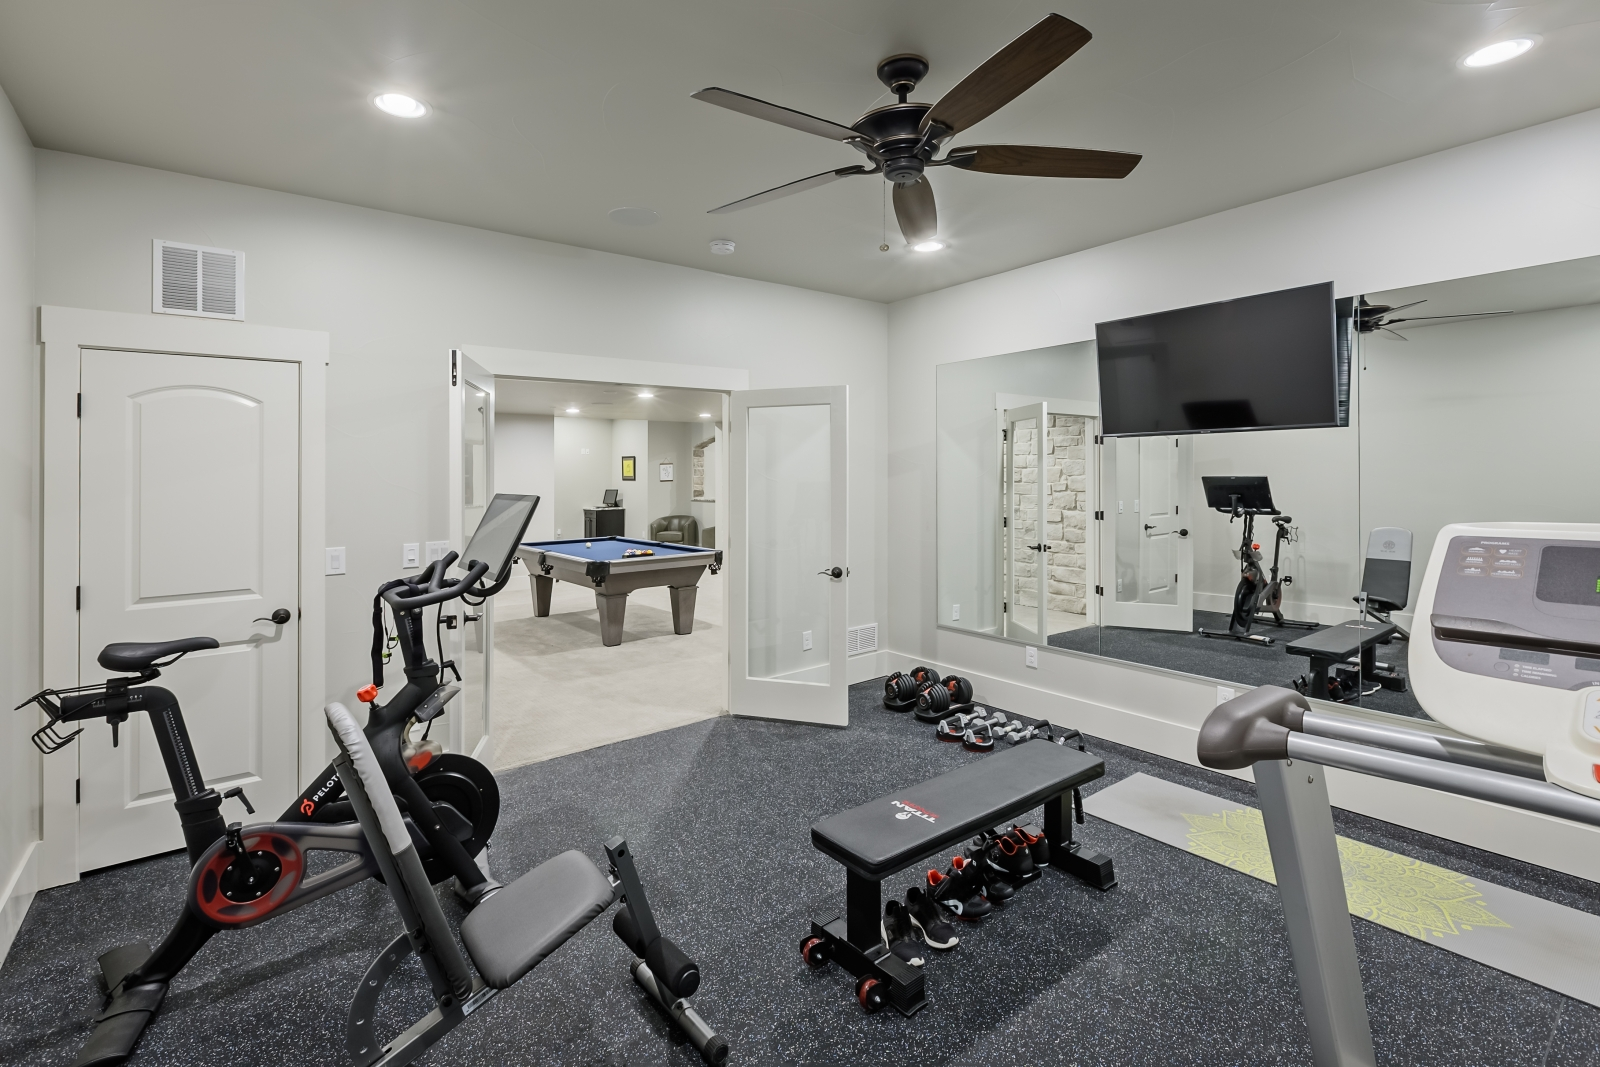 1_5343-Sedona-fitness-room